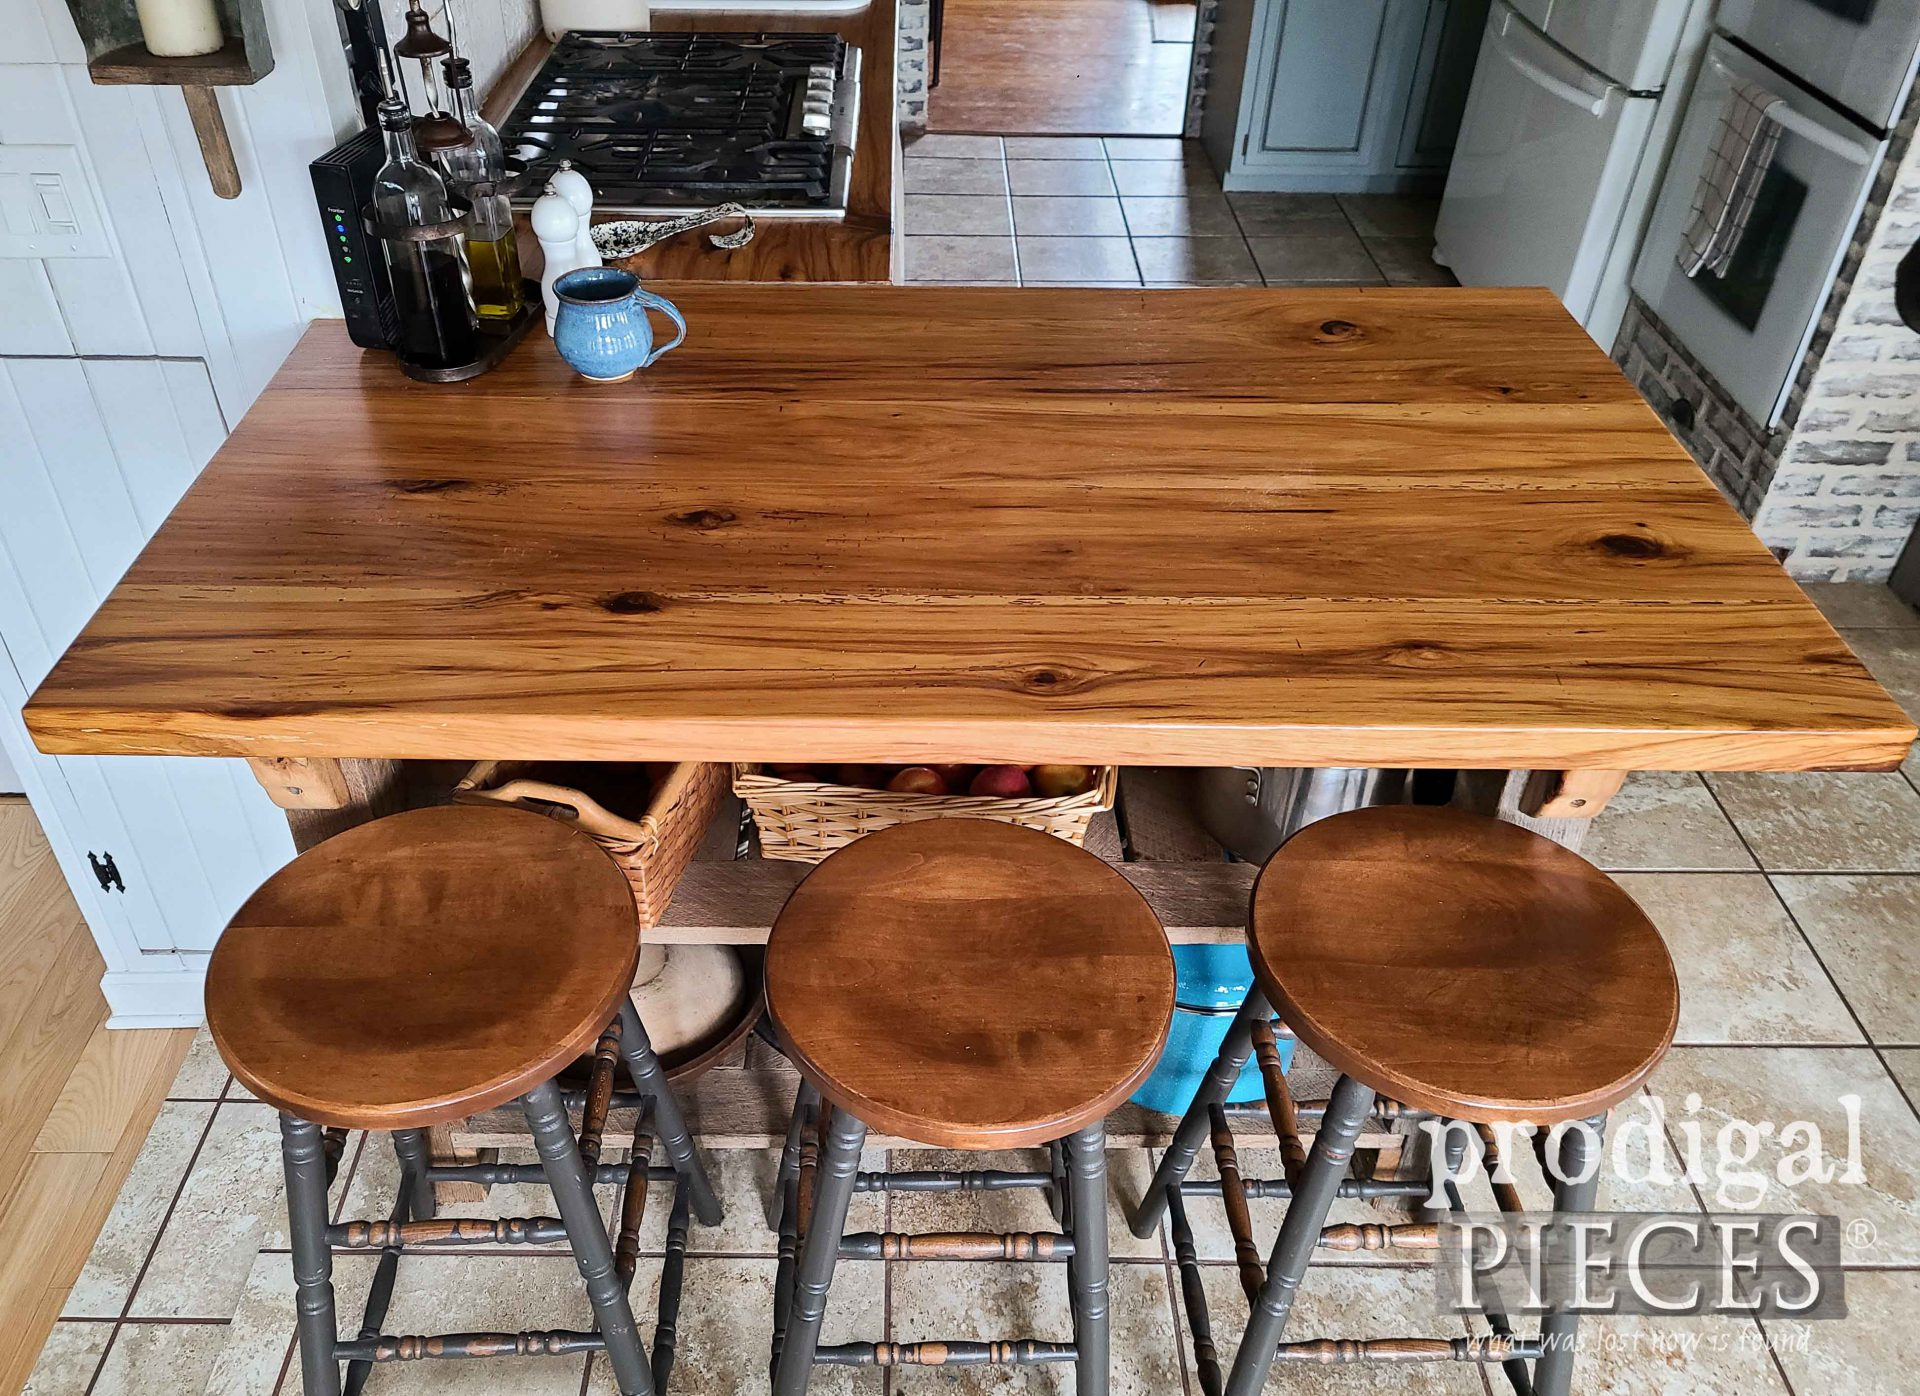 Reclaimed Hickory Wood Kitchen Peninsula by Larissa of Prodigal Pieces | prodigalpieces.com #prodigalpieces #diy #kitchen